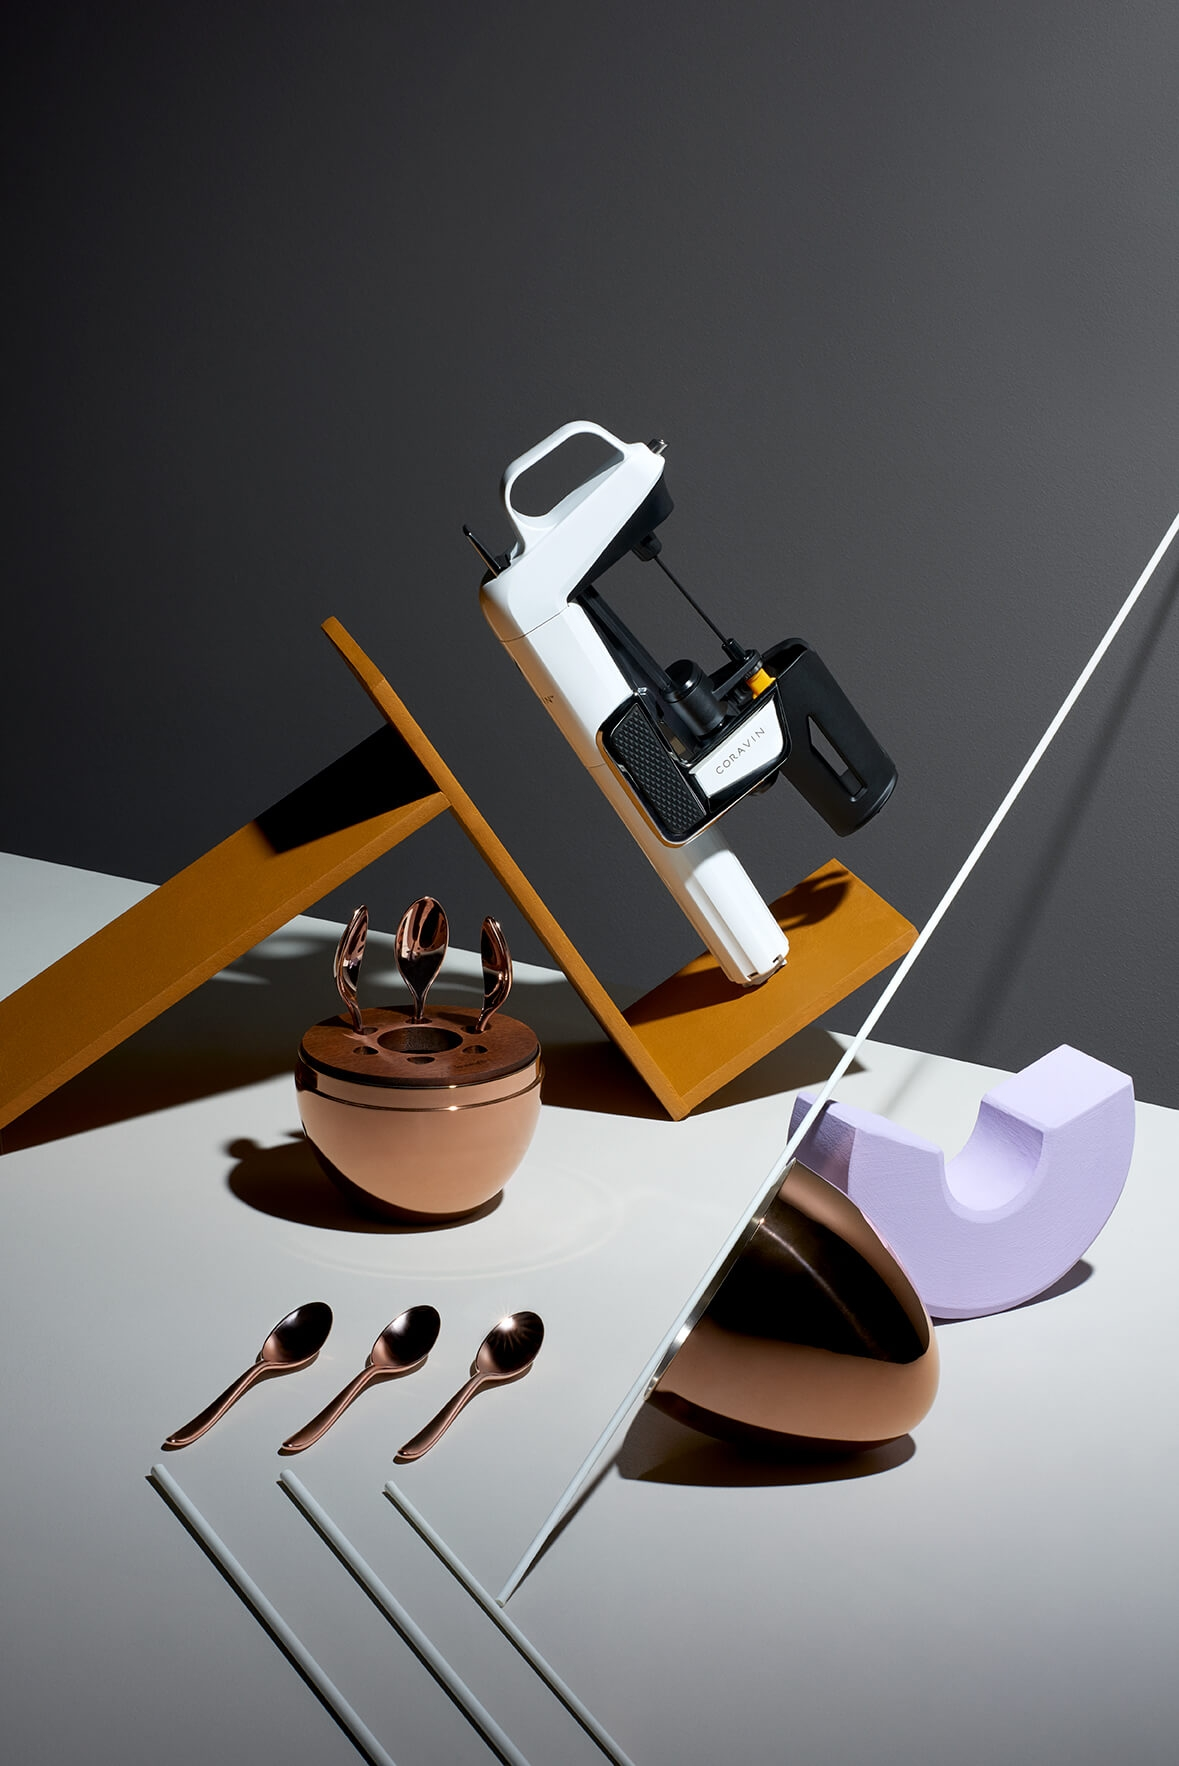 Coravin gloss white system, Christofle mood coffee precious in rose gold